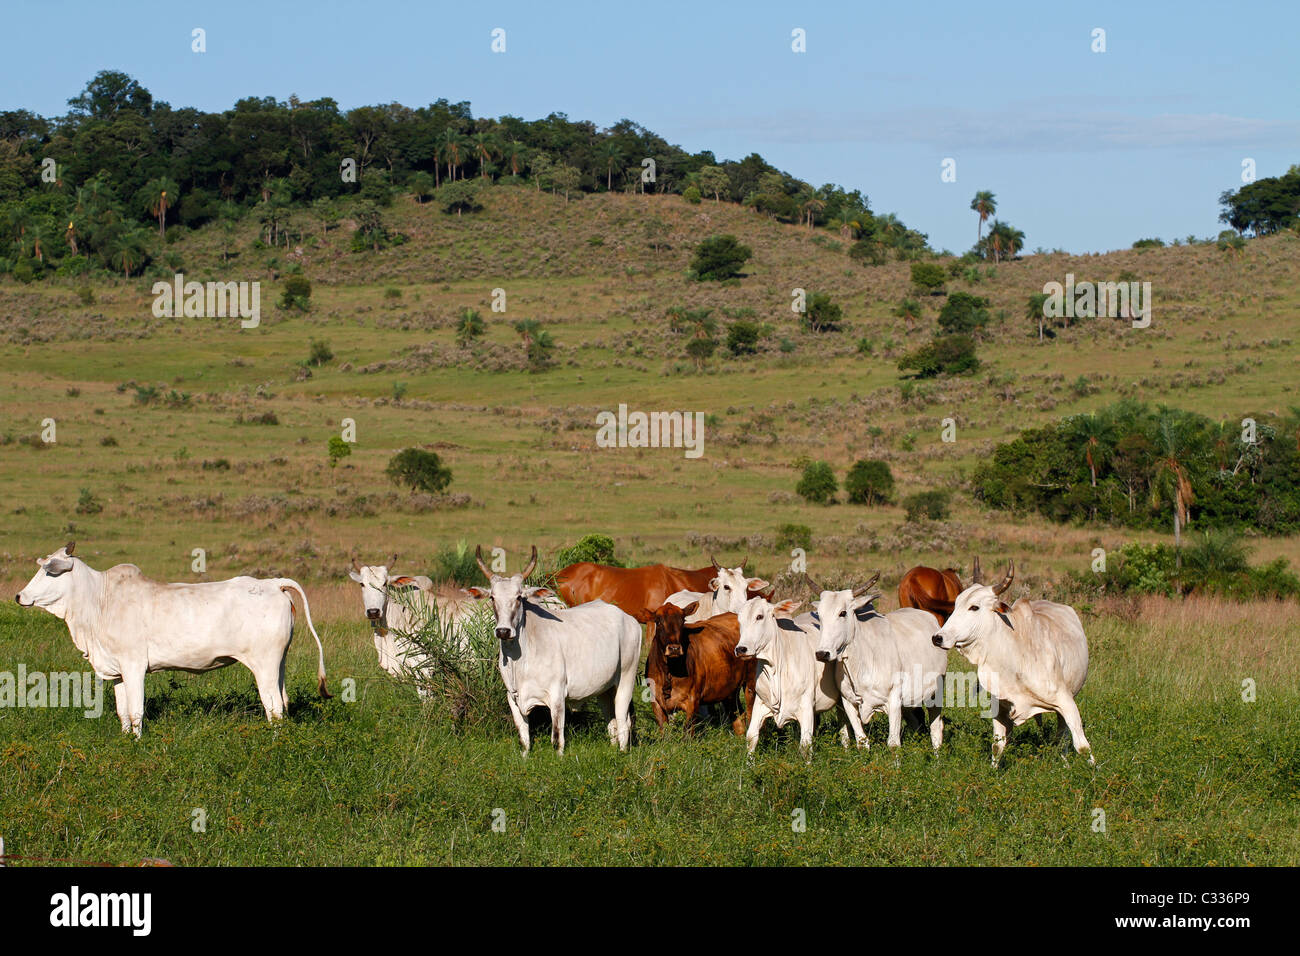 Cattle farming in Paraguay - Stock Image